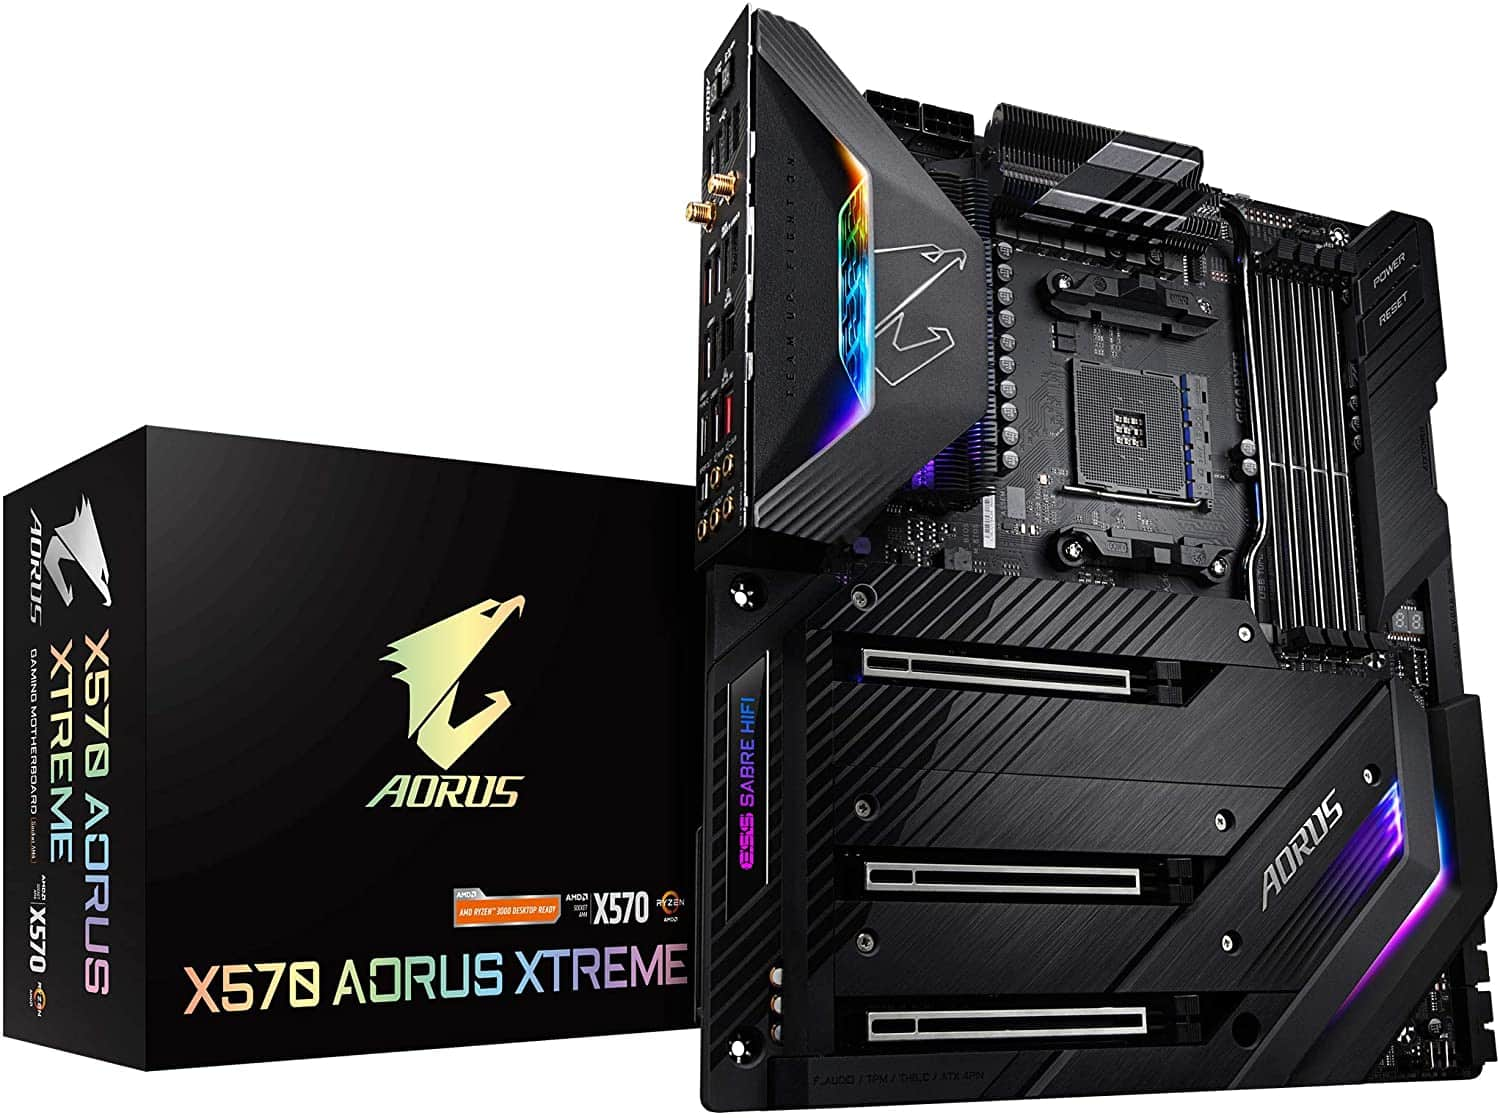 81cjC6qipzL. AC SL1500 Best Motherboard for Streaming - Top 9 Great Products in [year]